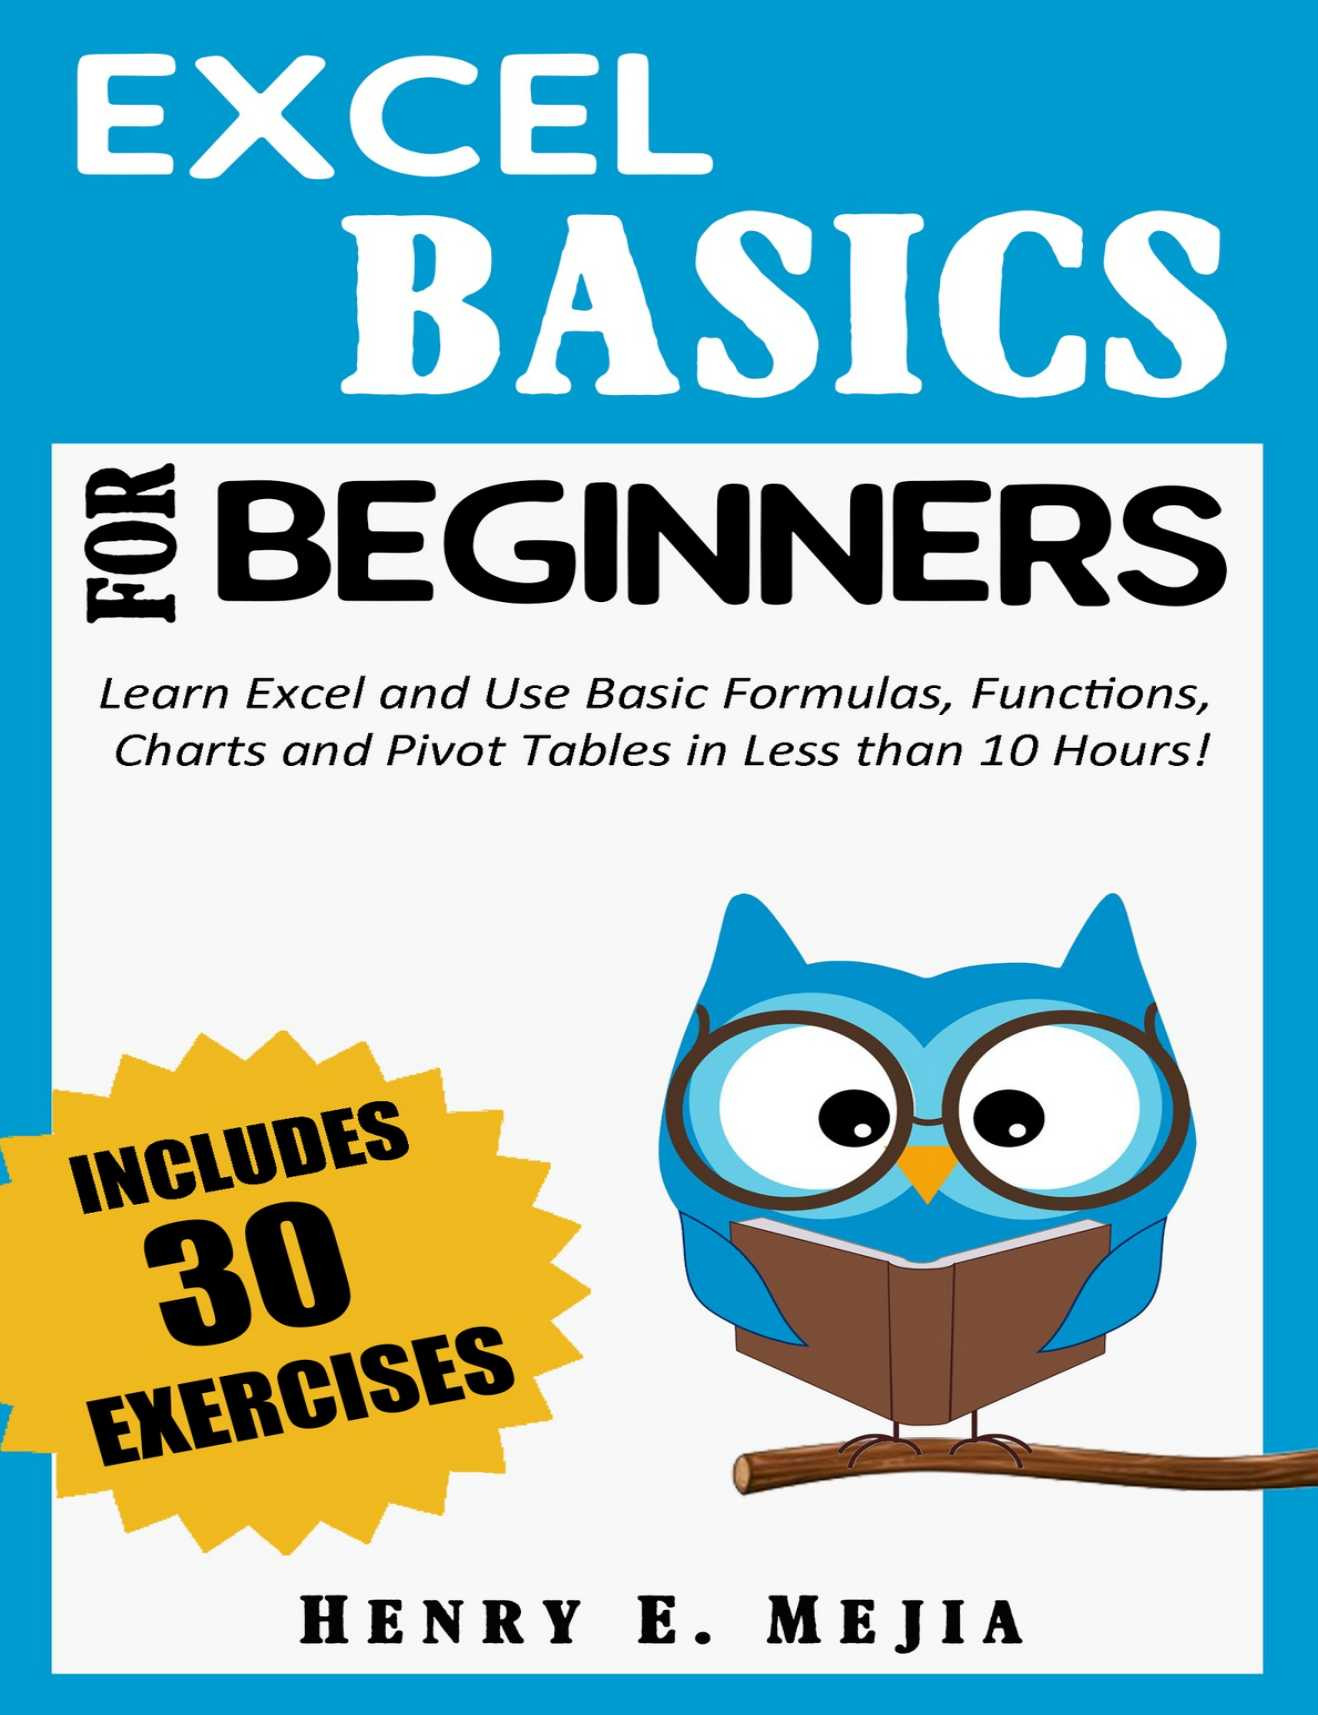 EXCEL BASICS FOR BEGINNERS: Learn Excel and Use Basic Formulas, Functions, Charts and Pivot Tables in Less Than 10 Hours!